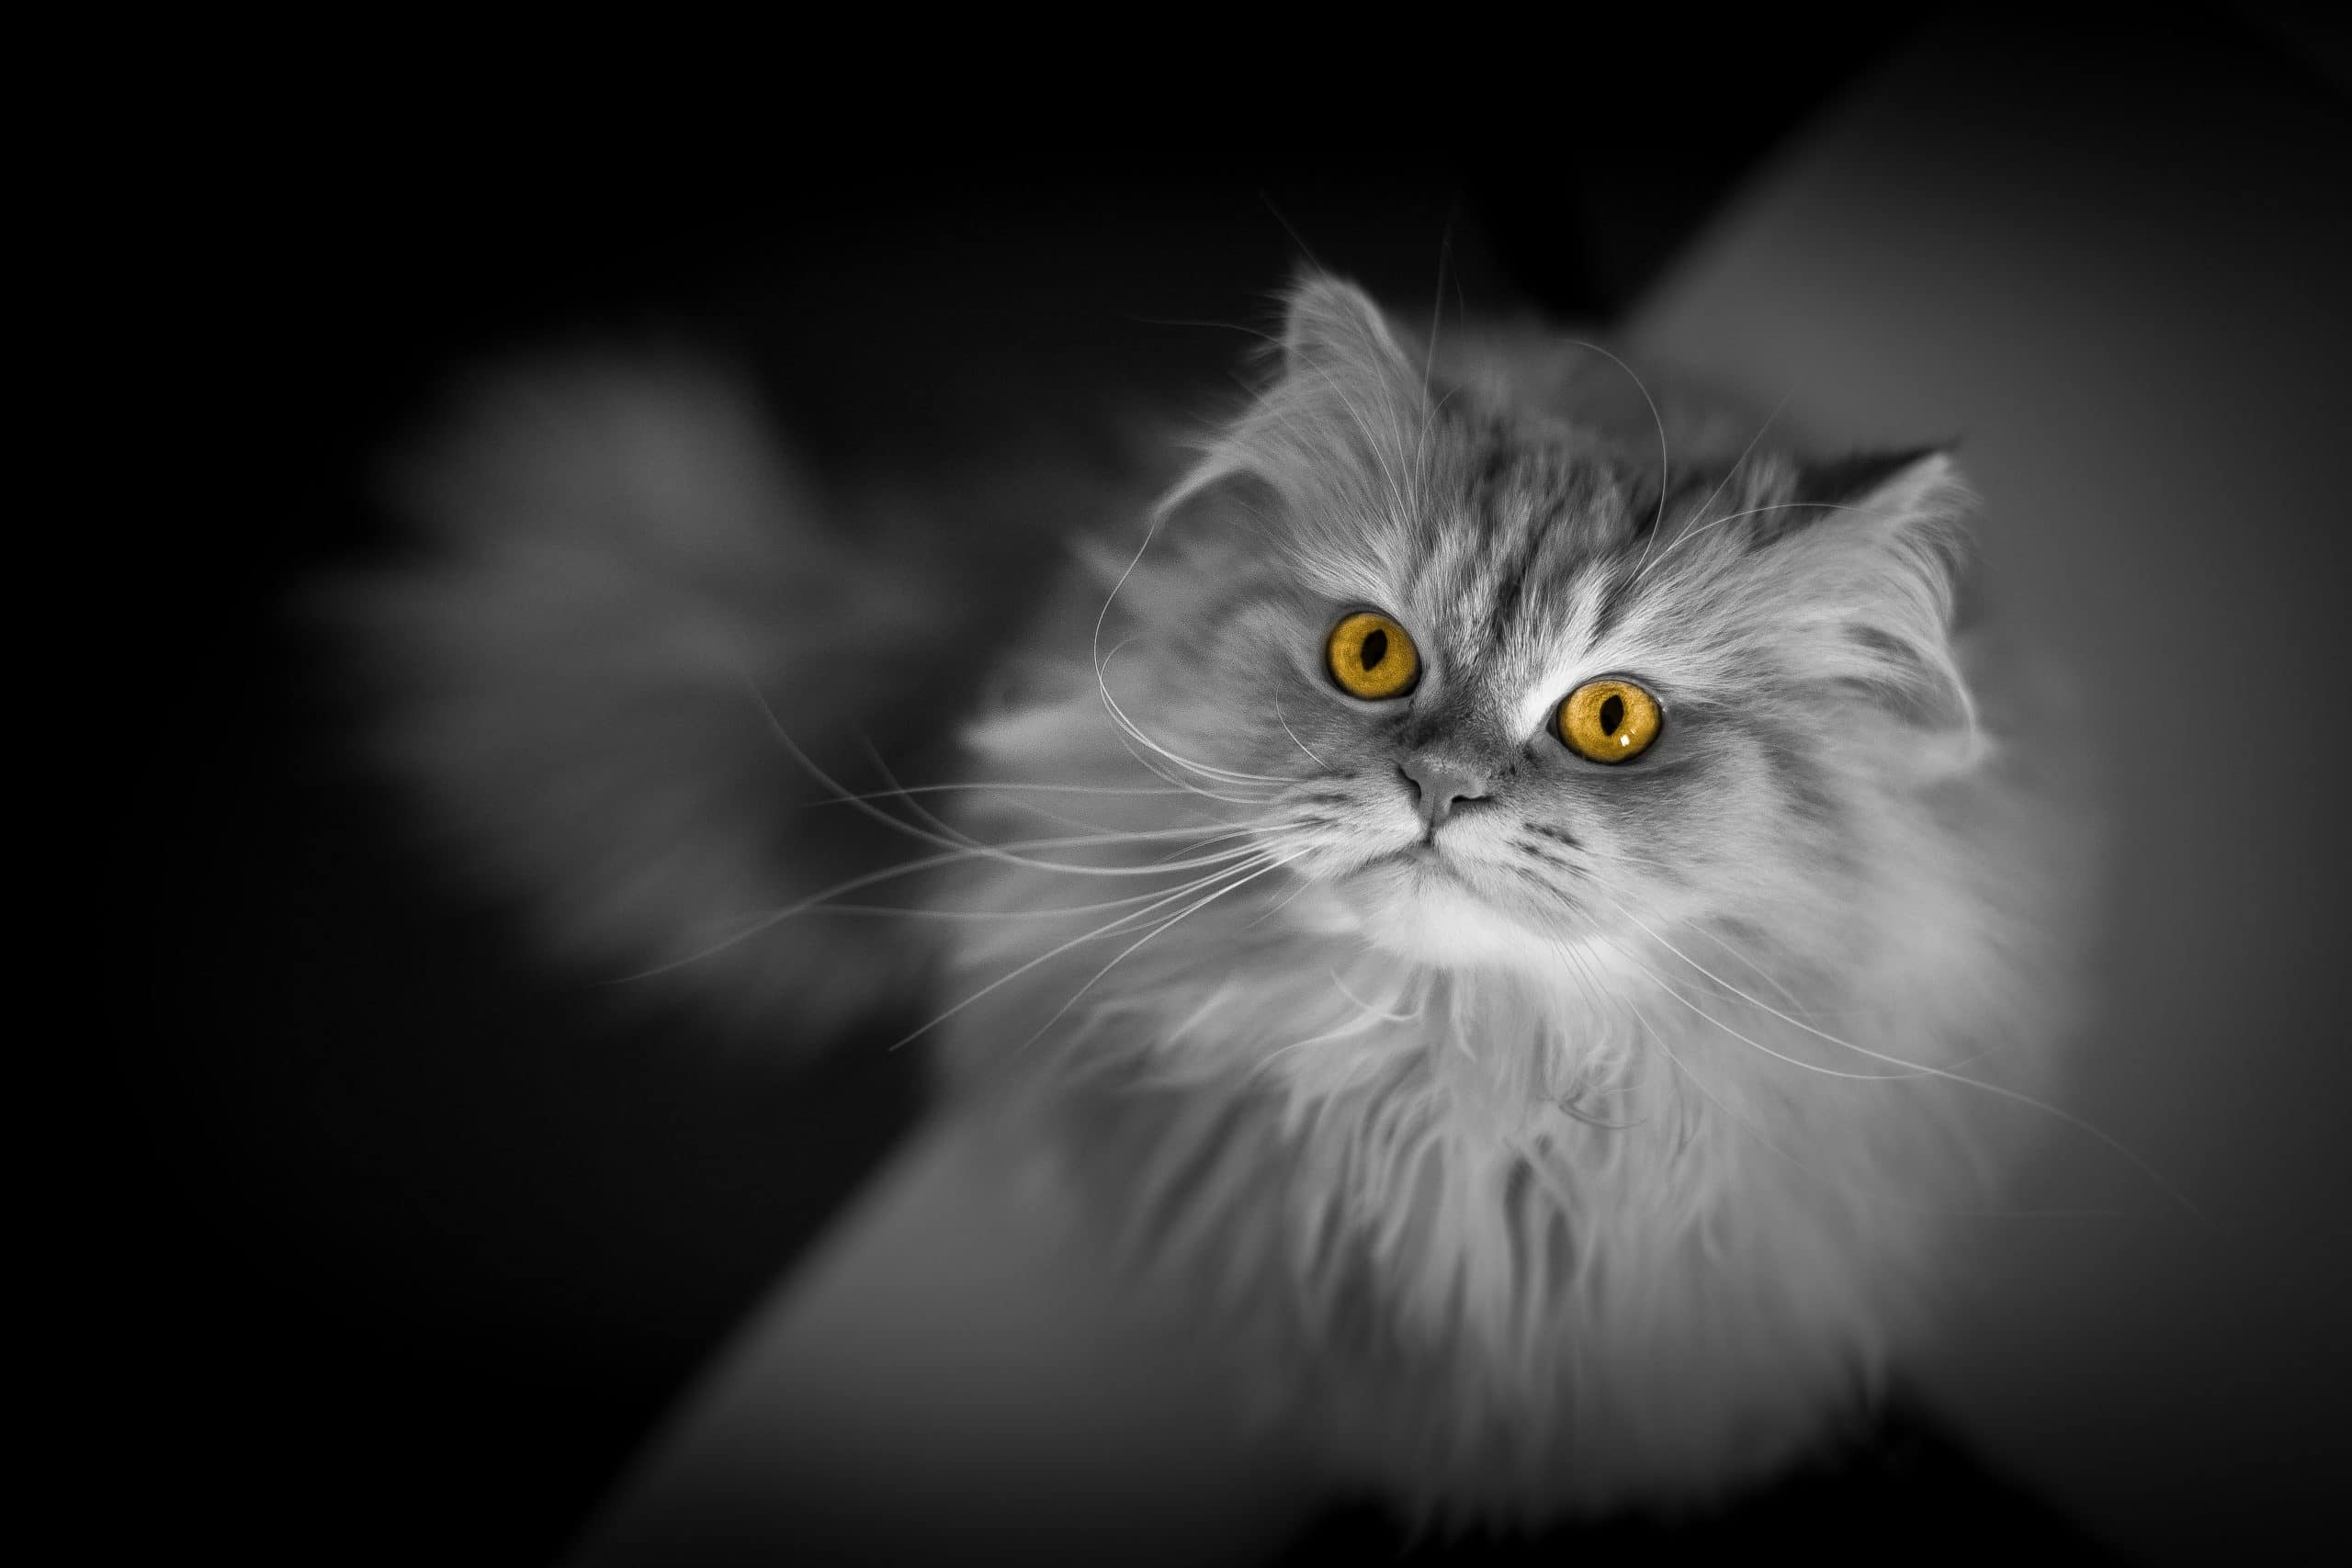 Bright eyes of cat - How to Use Selective Color in Photoshop